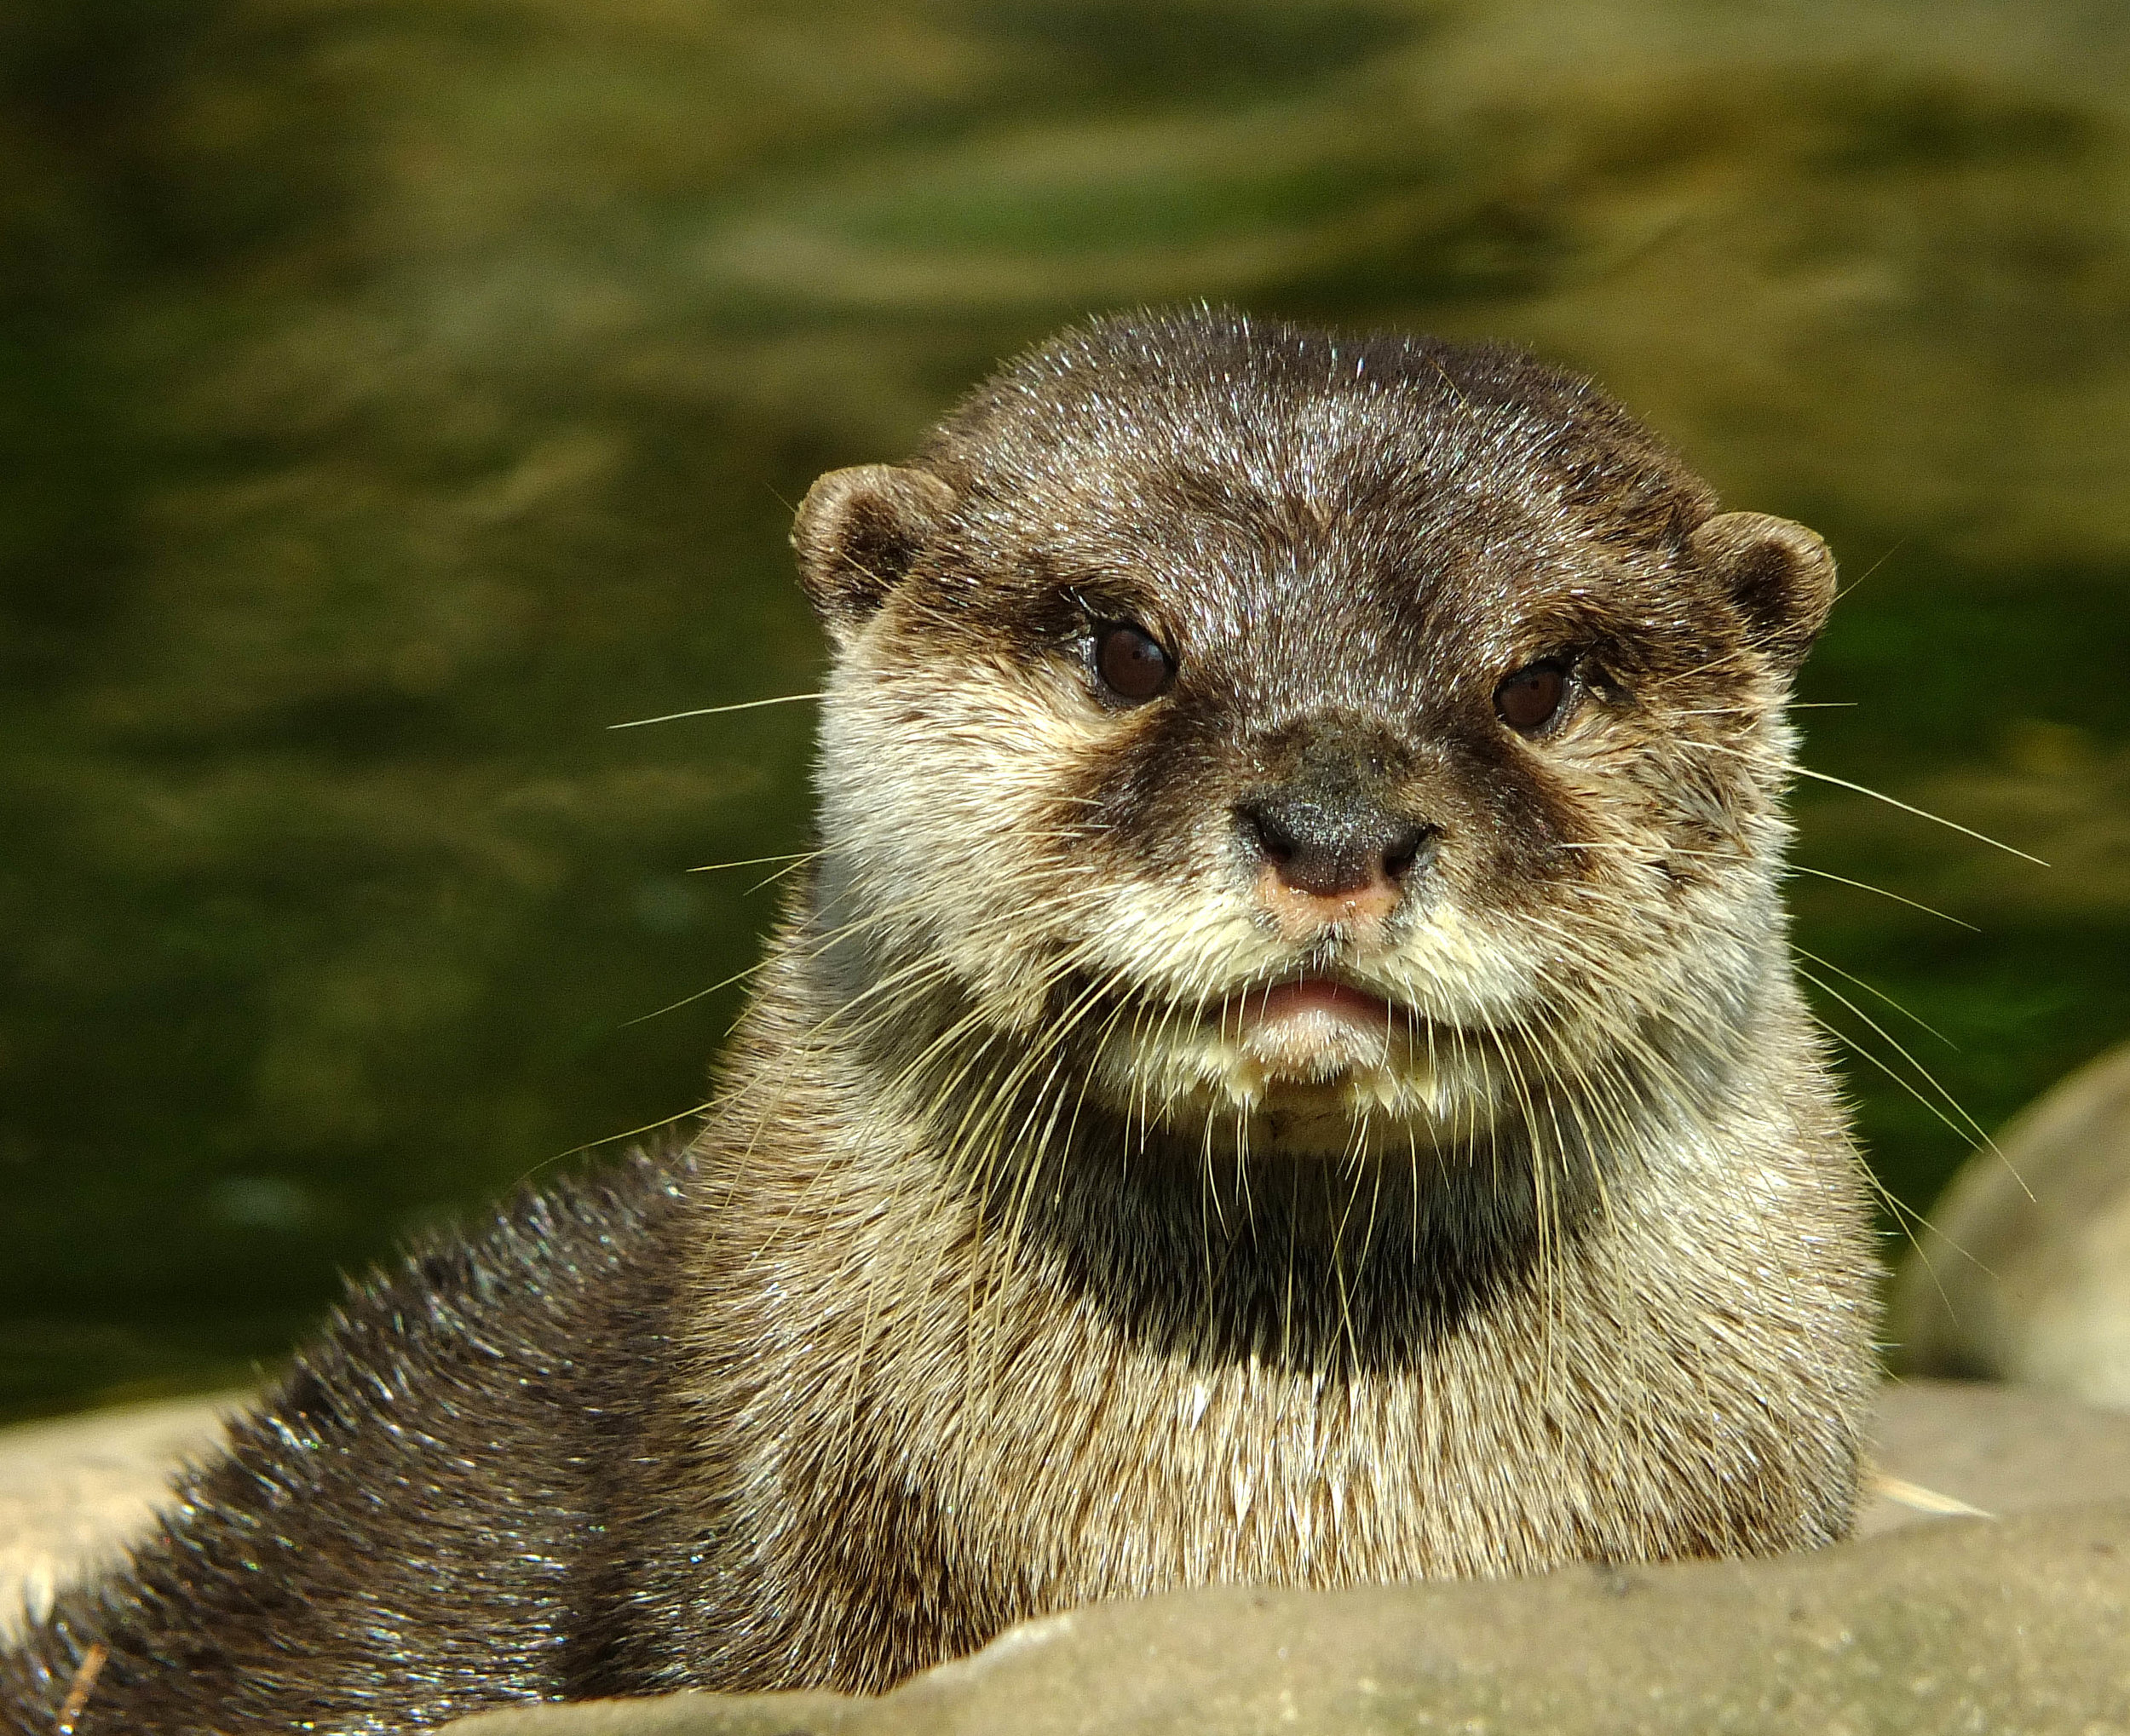 Another Cute Otter Portrait